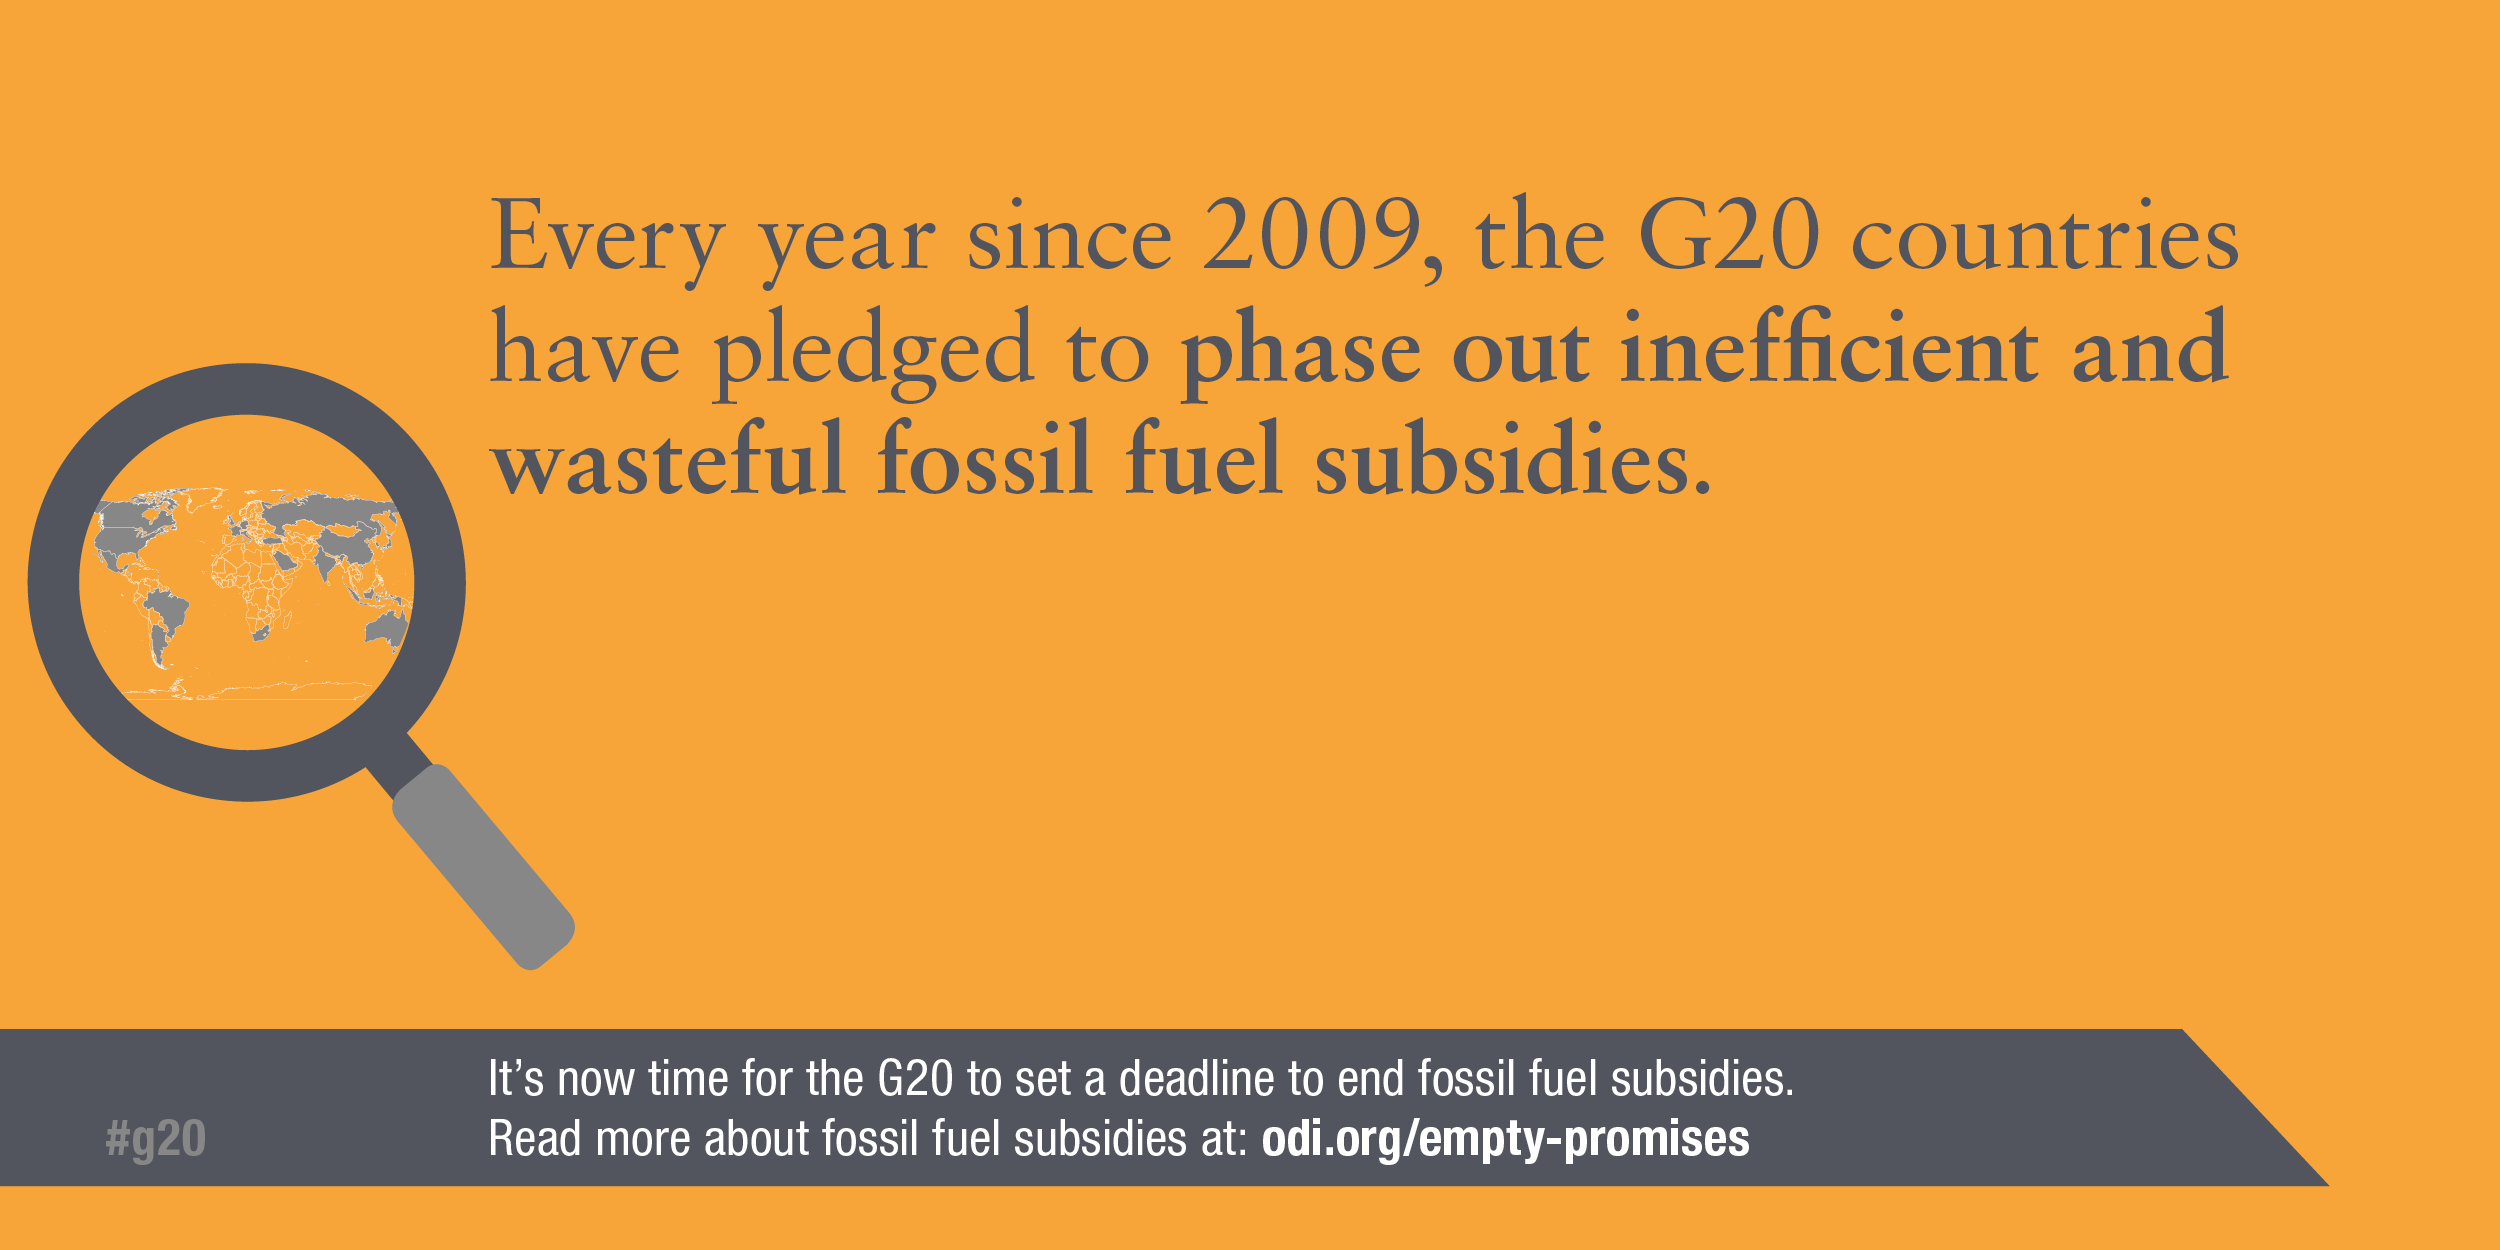 Infographic: Every year since 2009, the G20 has pledged to phase out fossil fuel subsidies